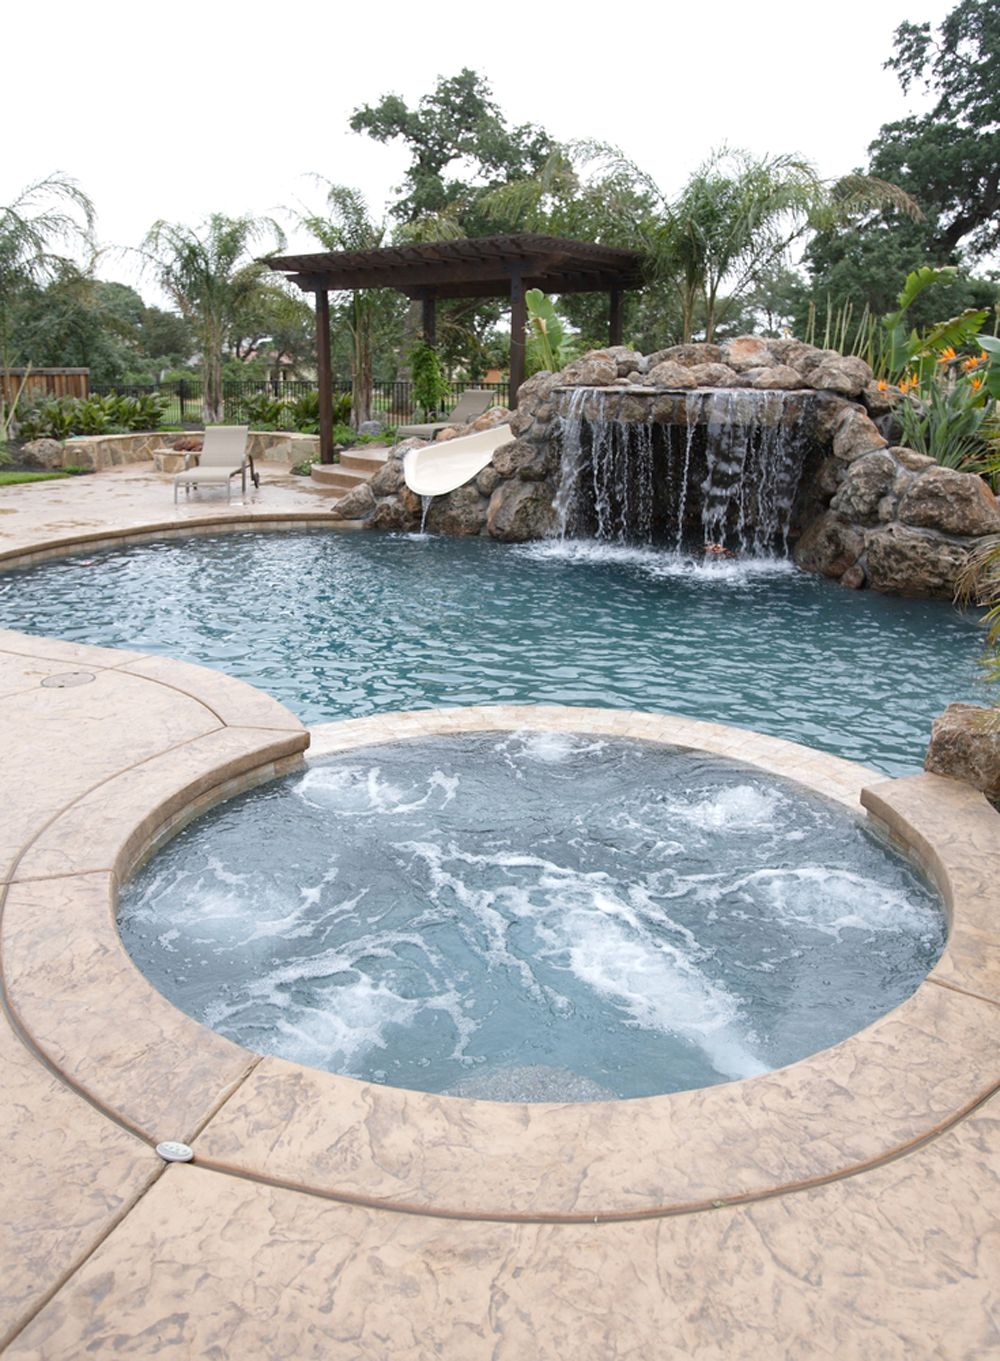 Jacuzzi Pool Utomhus I Will Have This One Day Backyard Utomhus Hus Design